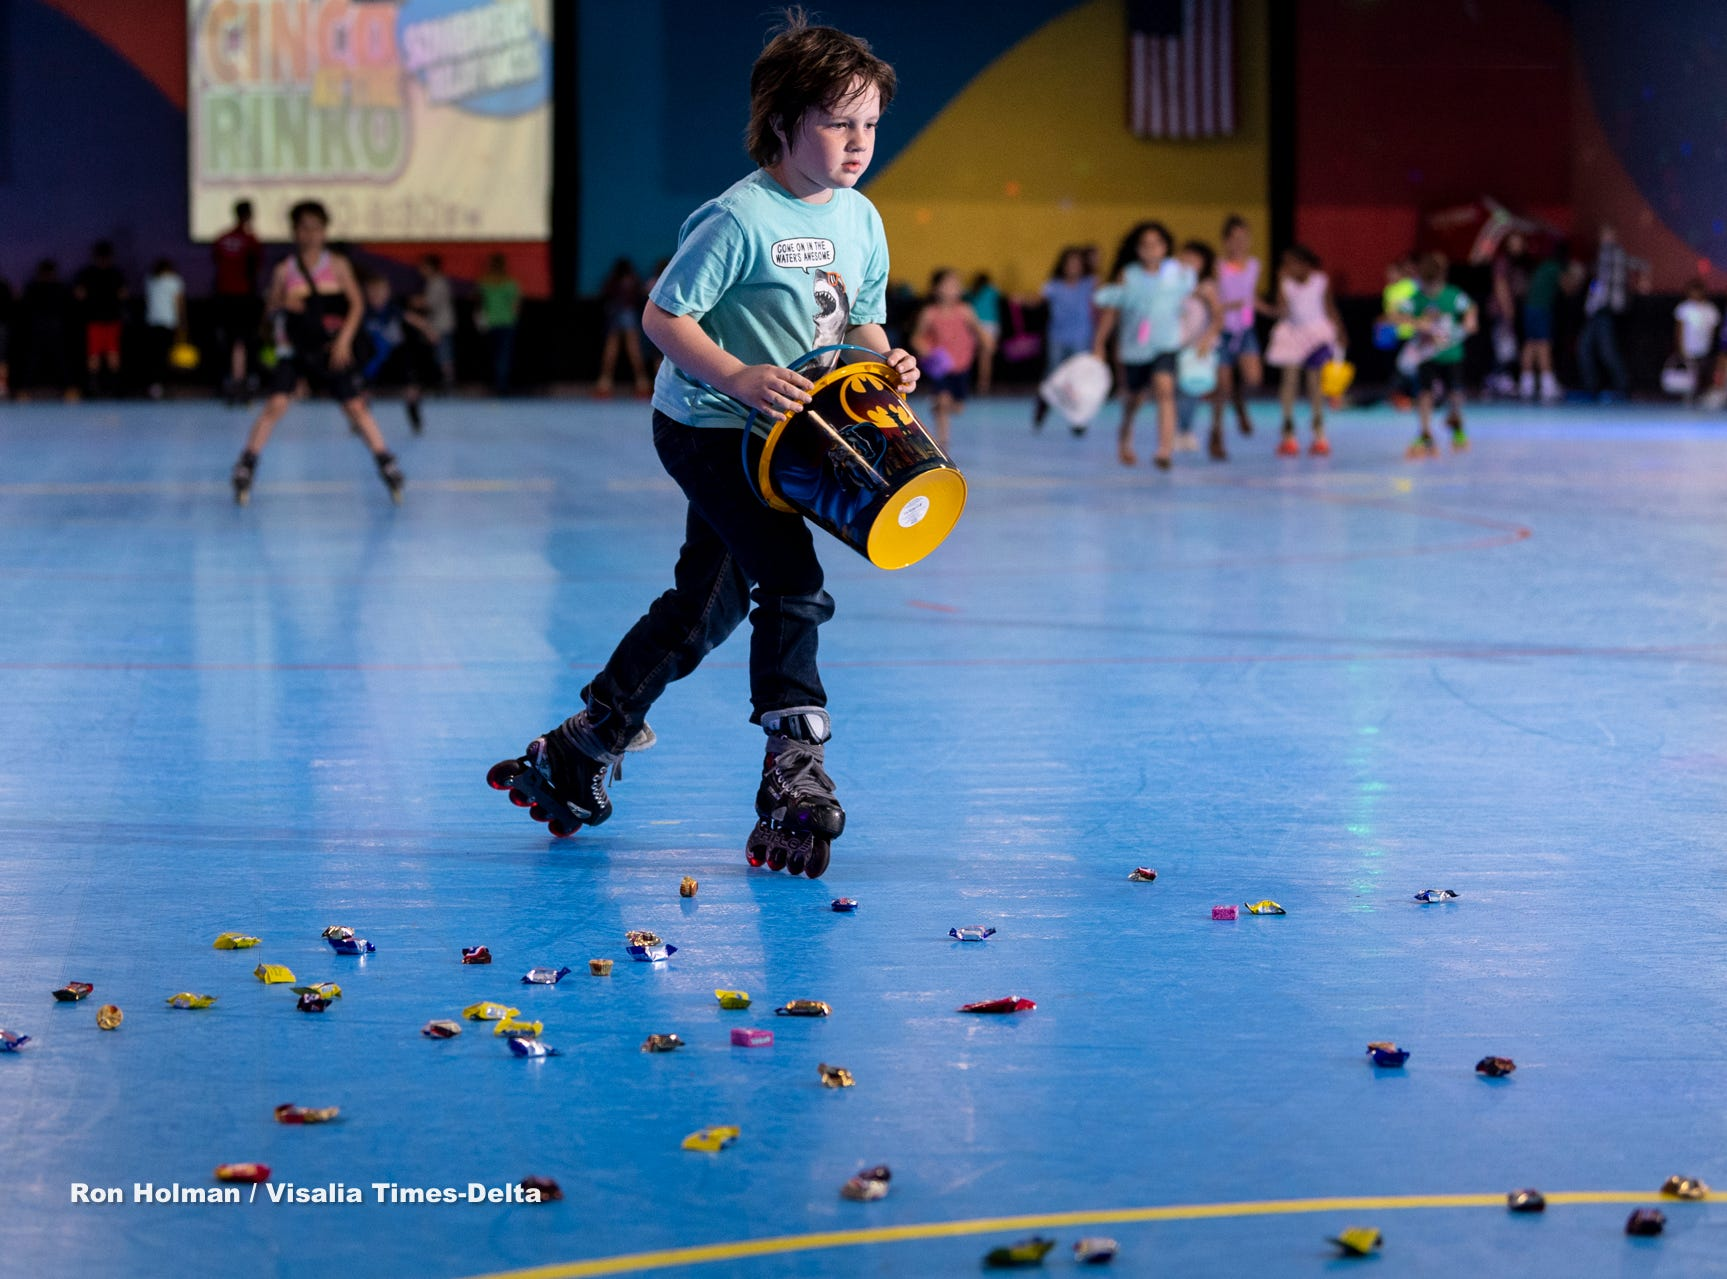 Devan Olson, 7, and other skaters at Roller Towne in Visalia scramble for candy and prizes during their pre-Easter egg hunt on Friday, April 19, 2019.